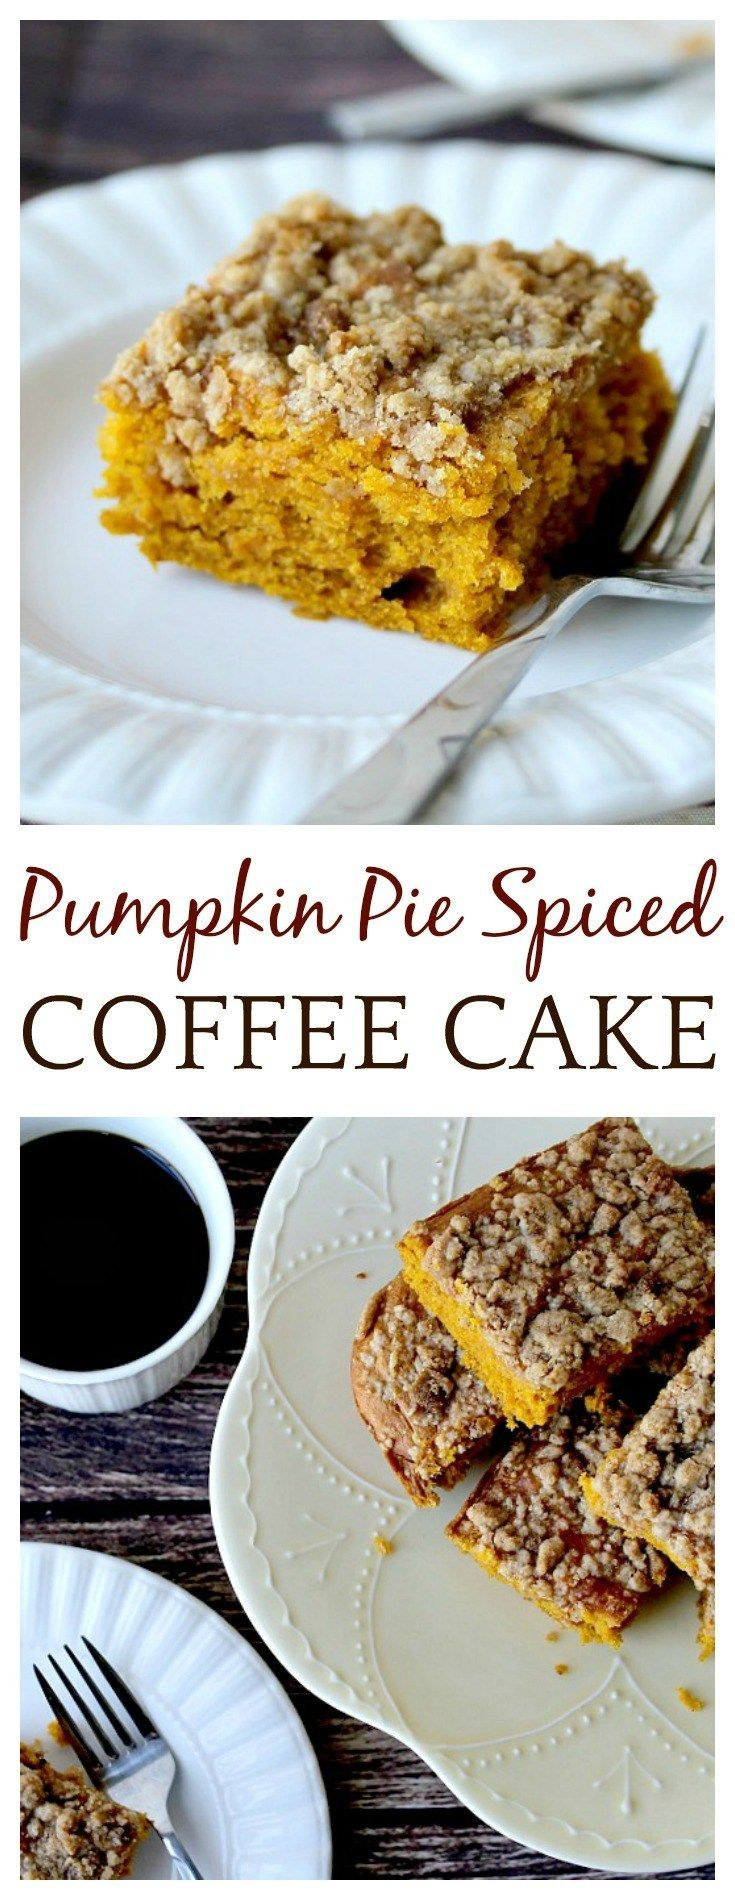 Even though it's technically still Summer, and the weather has yet to cool off around here, the smell of pumpkin spice in the air has me overly, ridiculously excited about the upcoming Fall season! I've got quite a list of recipes in the works, and first up is this Pumpkin Pie Spiced Coffee cake with an unexpected ingredient!